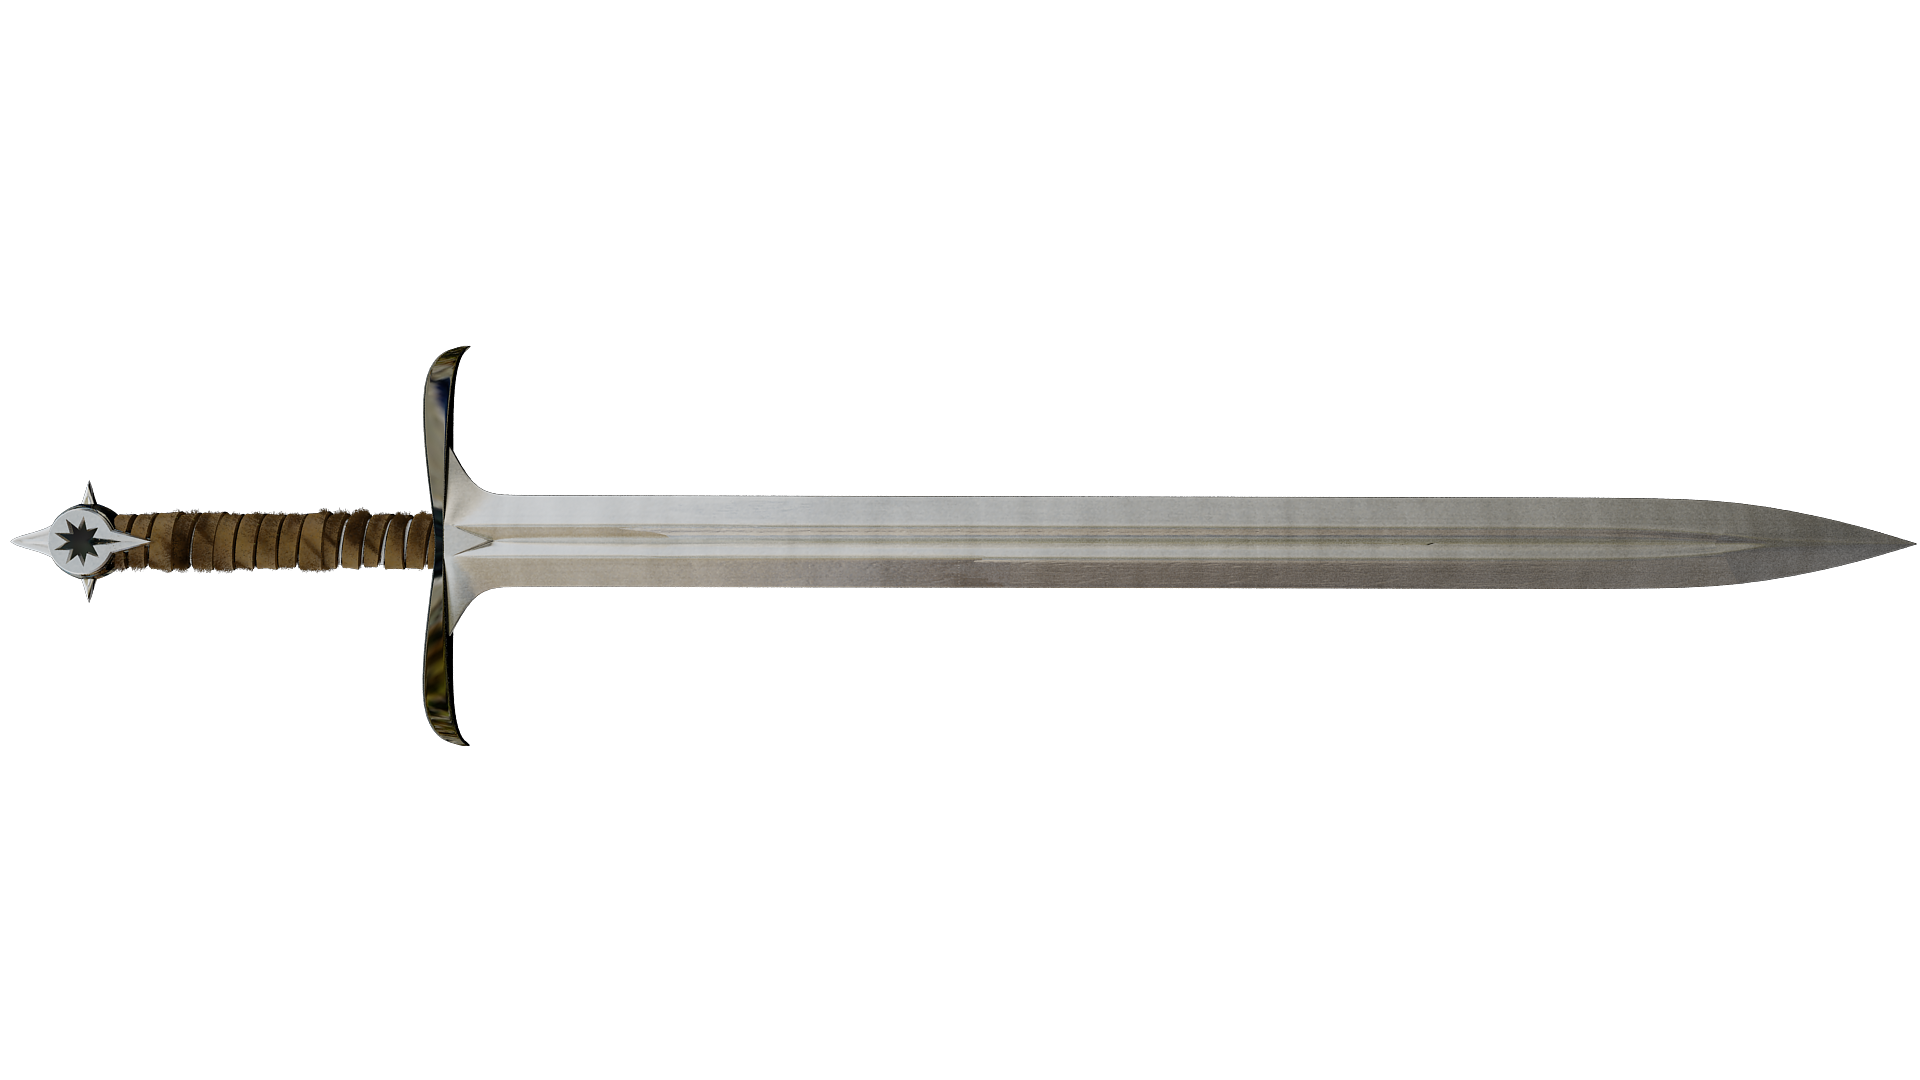 Tara Duncan Le Forum RPG Sword-hd-png-sword-png-image-1920